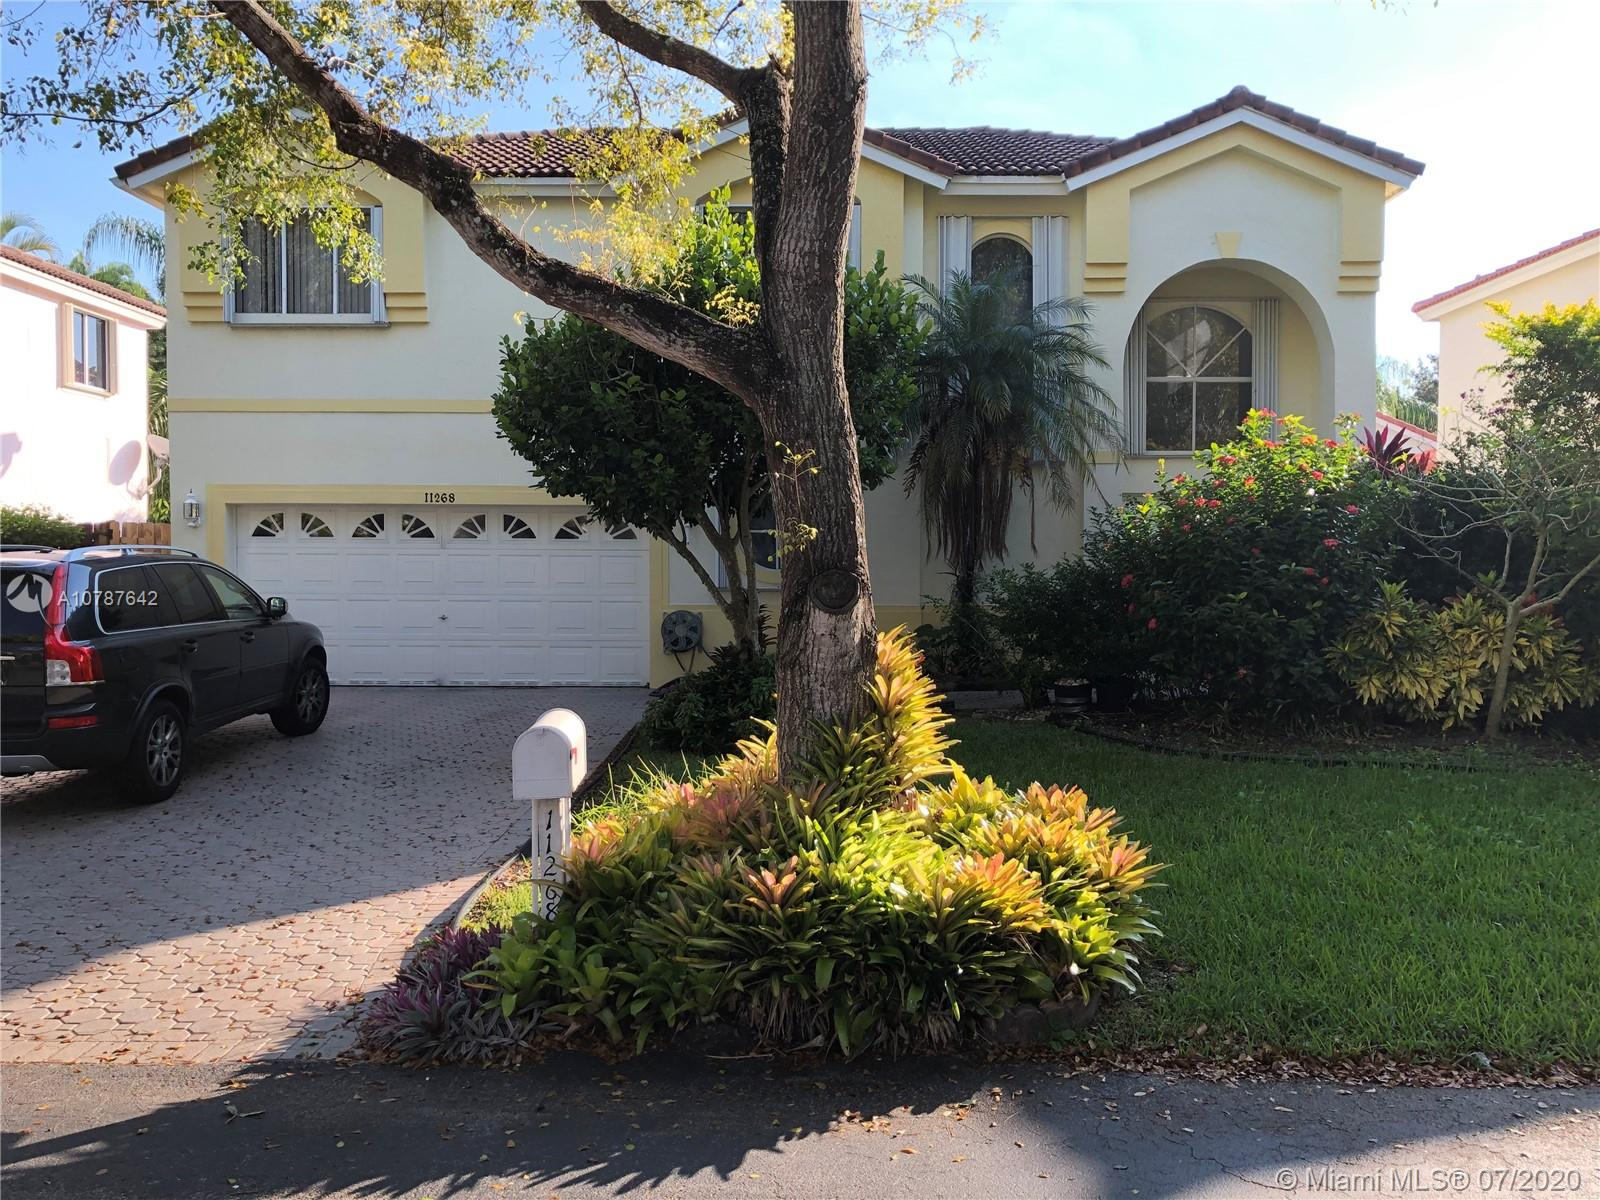 11268 Rhapsody Rd, Cooper City, Florida 33026, 4 Bedrooms Bedrooms, ,3 BathroomsBathrooms,Residential Lease,For Rent,11268 Rhapsody Rd,A10787642